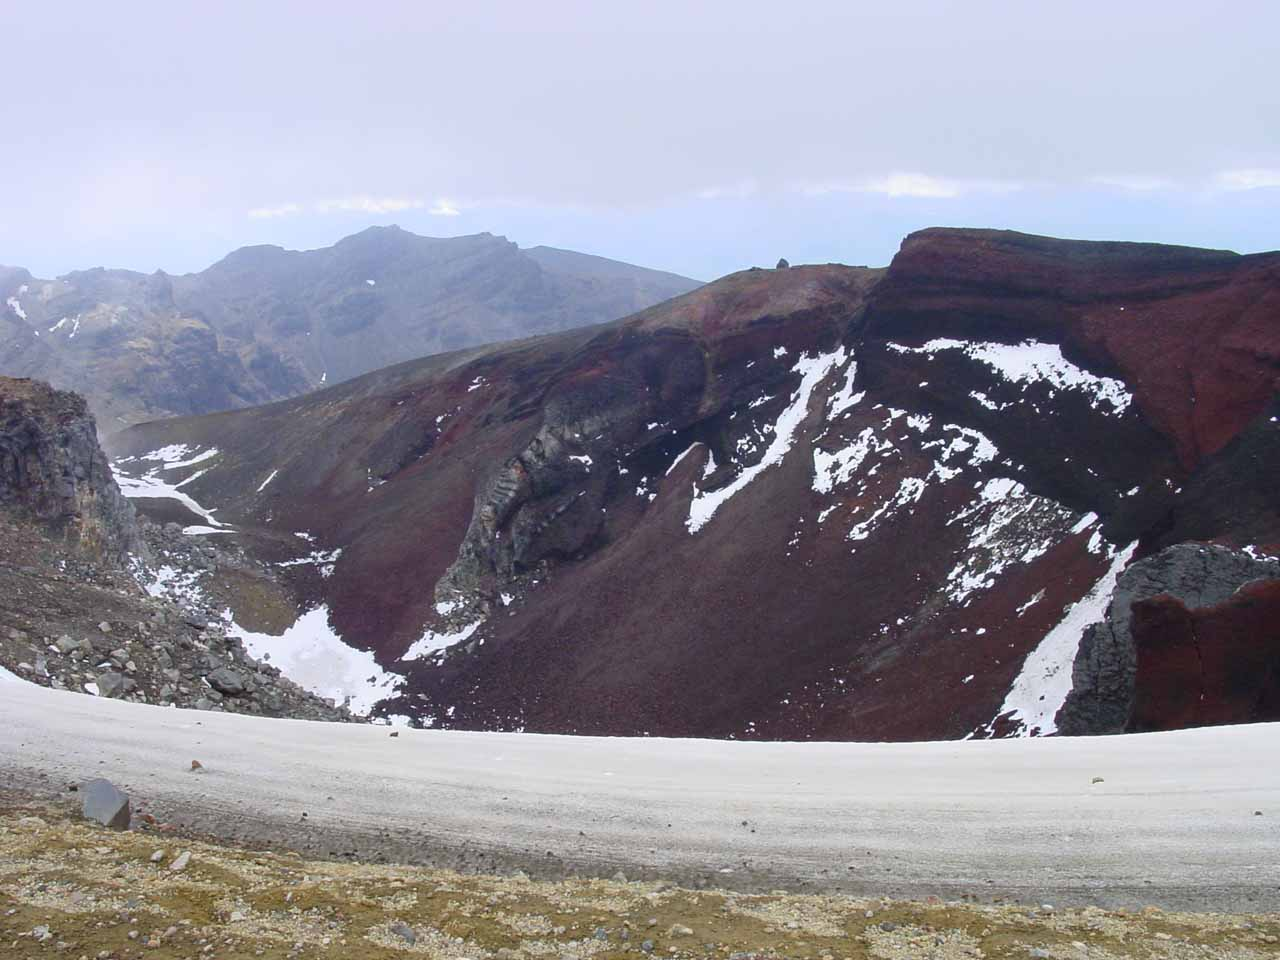 Getting up to the Red Crater on the Tongariro Crossing